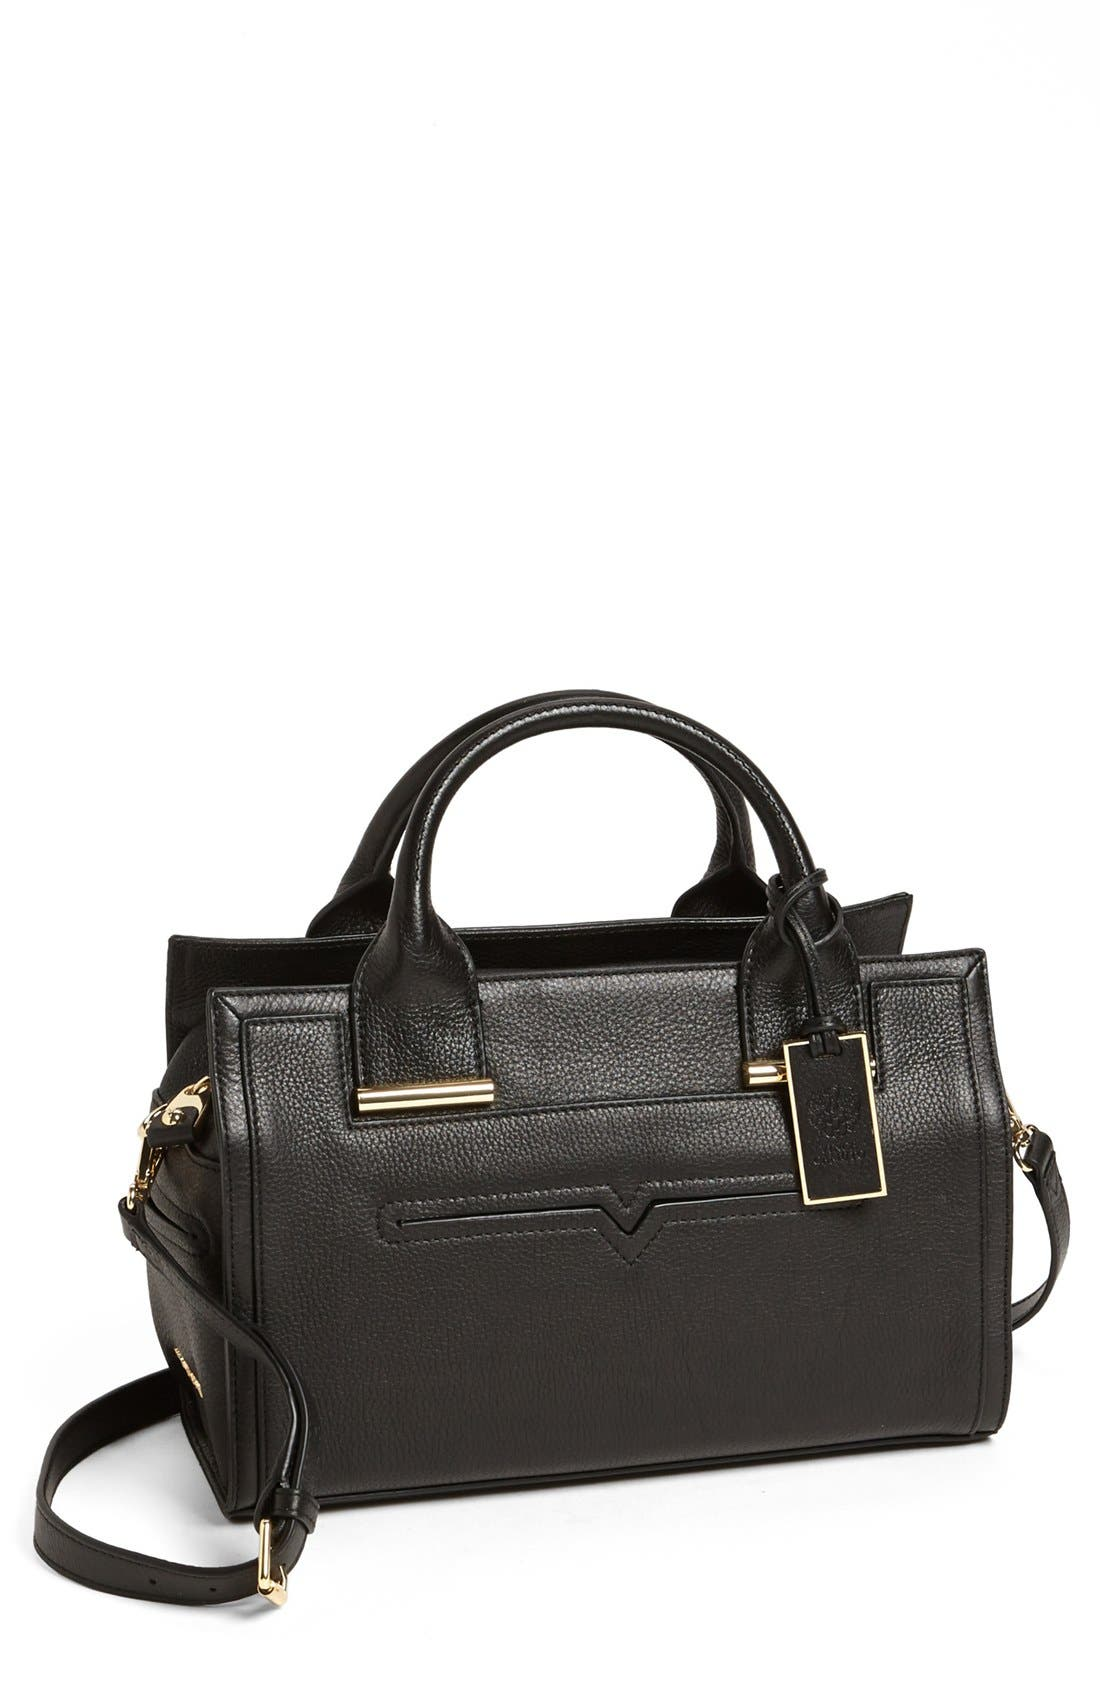 Alternate Image 1 Selected - Vince Camuto 'Billy - Small' Satchel